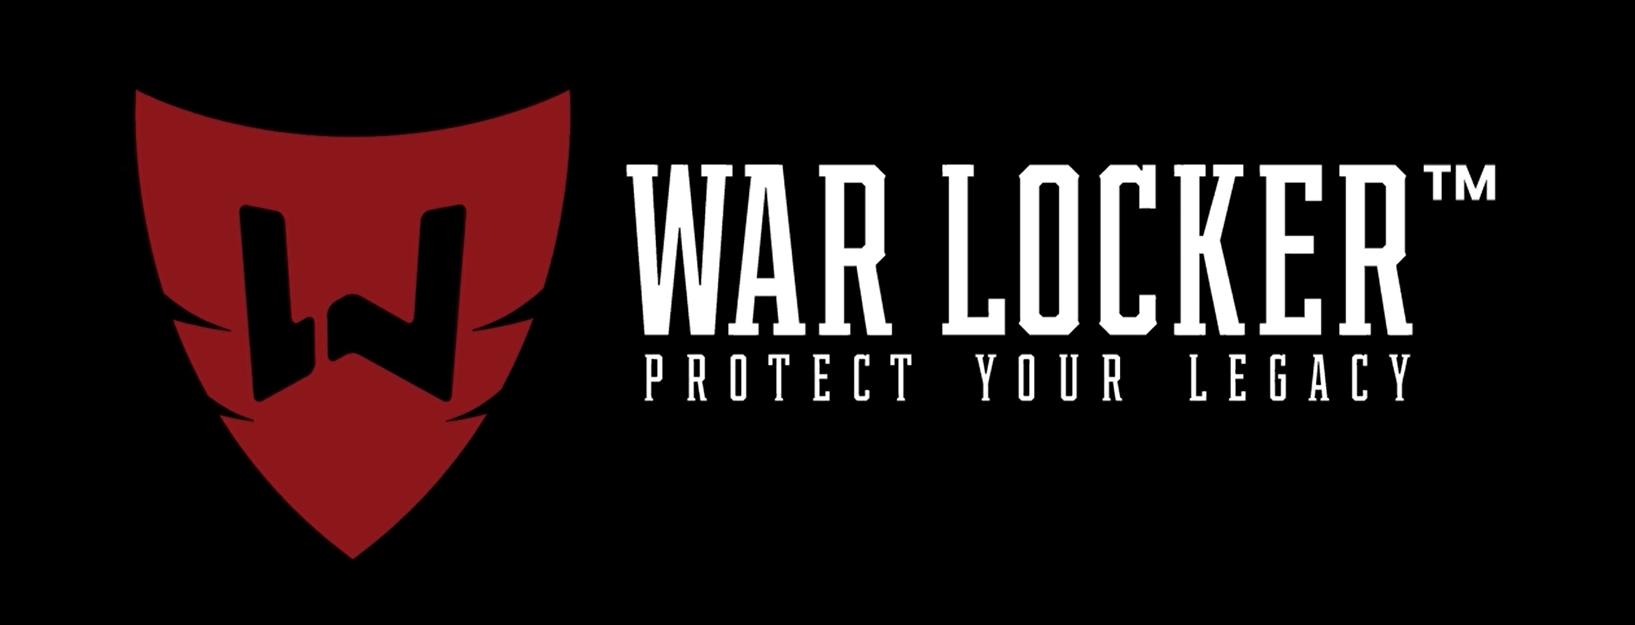 War Locker